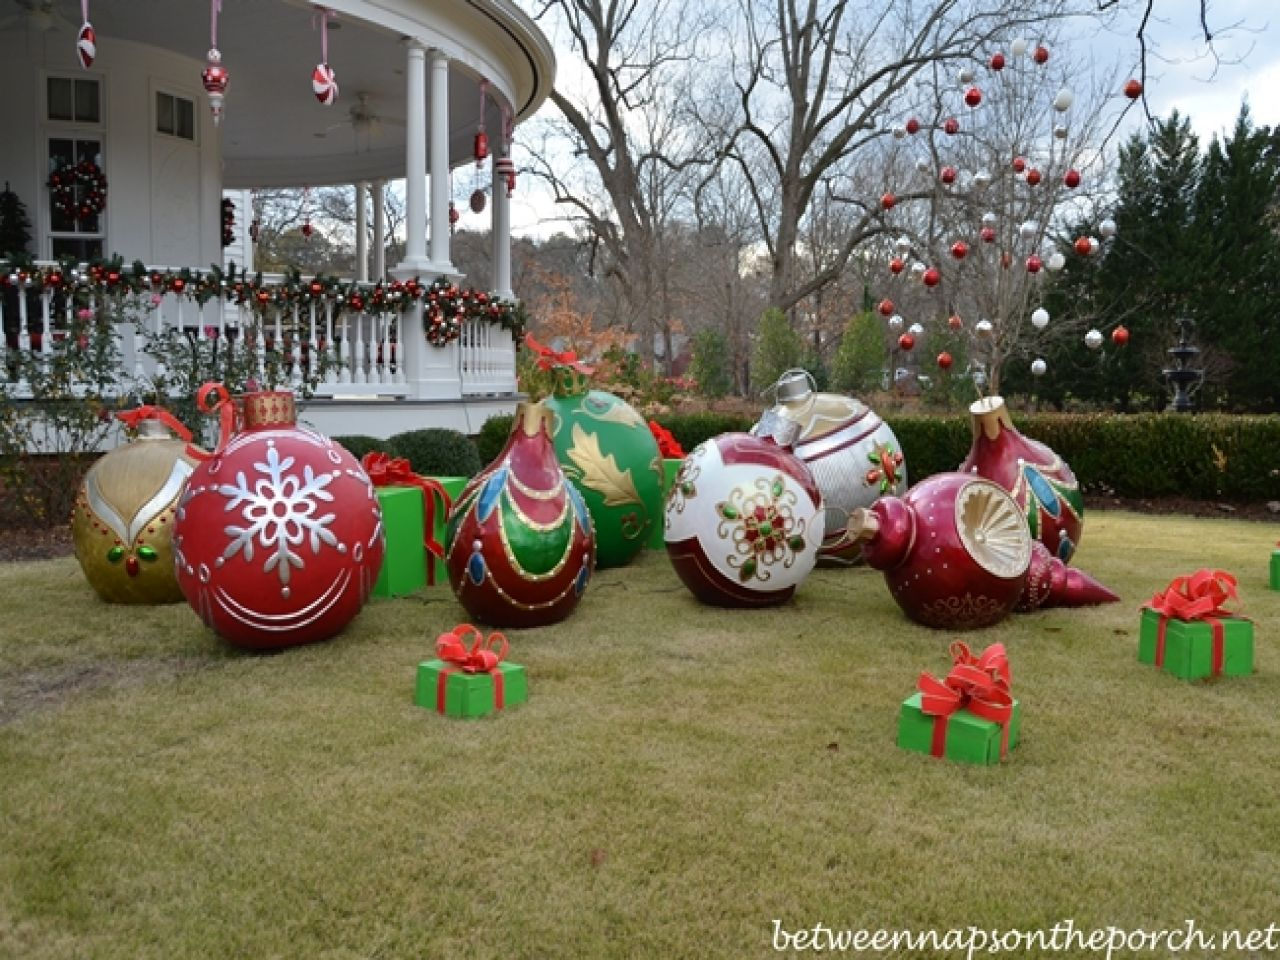 Homemade christmas yard decorations - Diy Outdoor Christmas Decorations Big Christmas Ornaments Decorations Large Christmas Lawn Ornaments